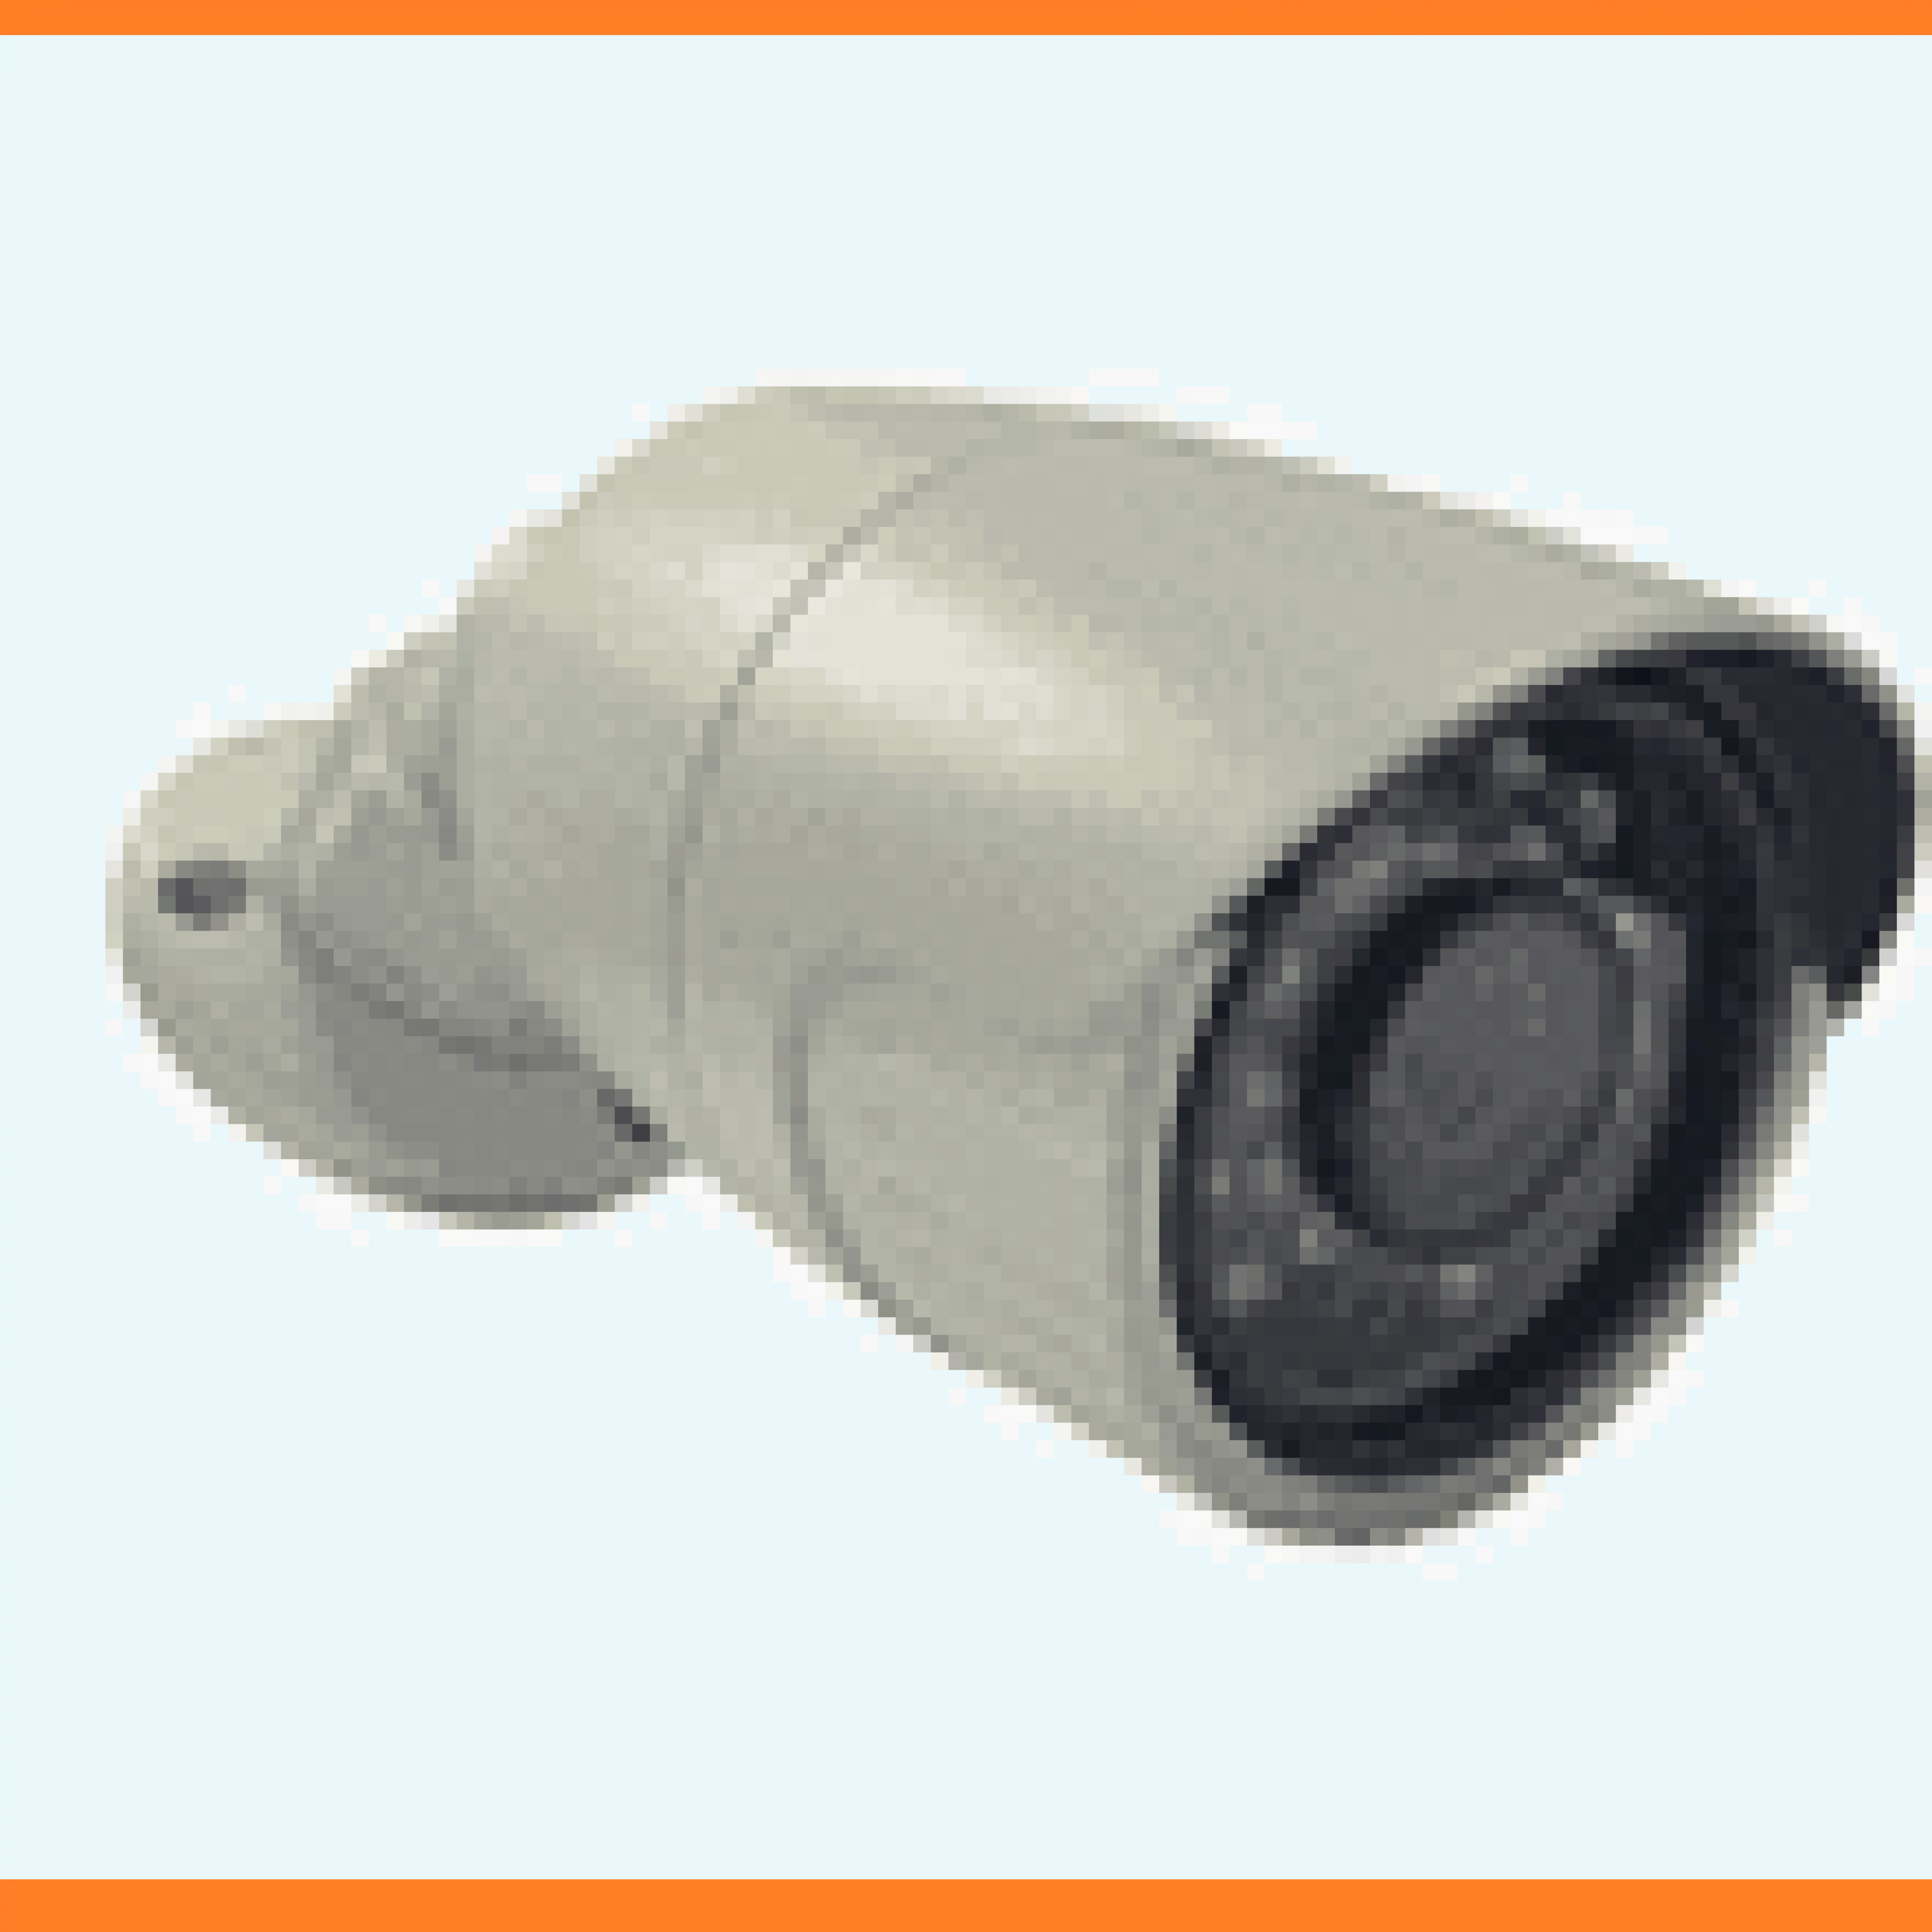 Video Surveillance and Network Video